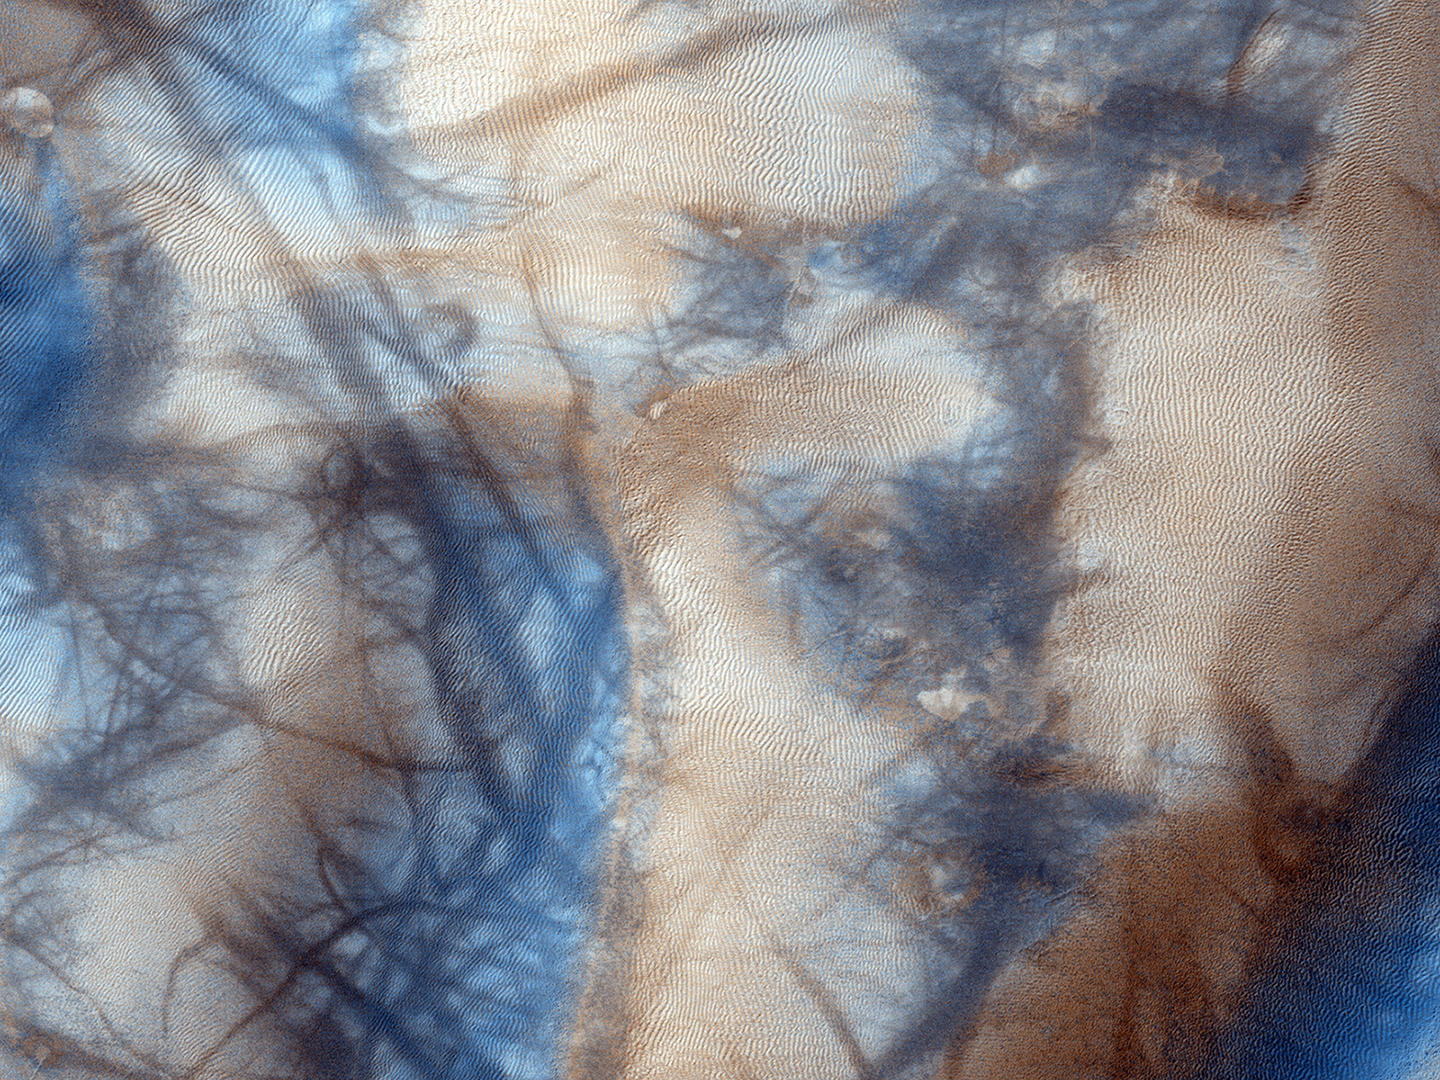 A dune field near the south pole gets shaped as carbon dioxide frost forms and sublimates. Scientists use images like this taken by the Mars Reconnaissance Orbiter's HiRise camera to understand how these processes change with time.  Credit:  Nasa/JPL-Caltech/University of Arizona